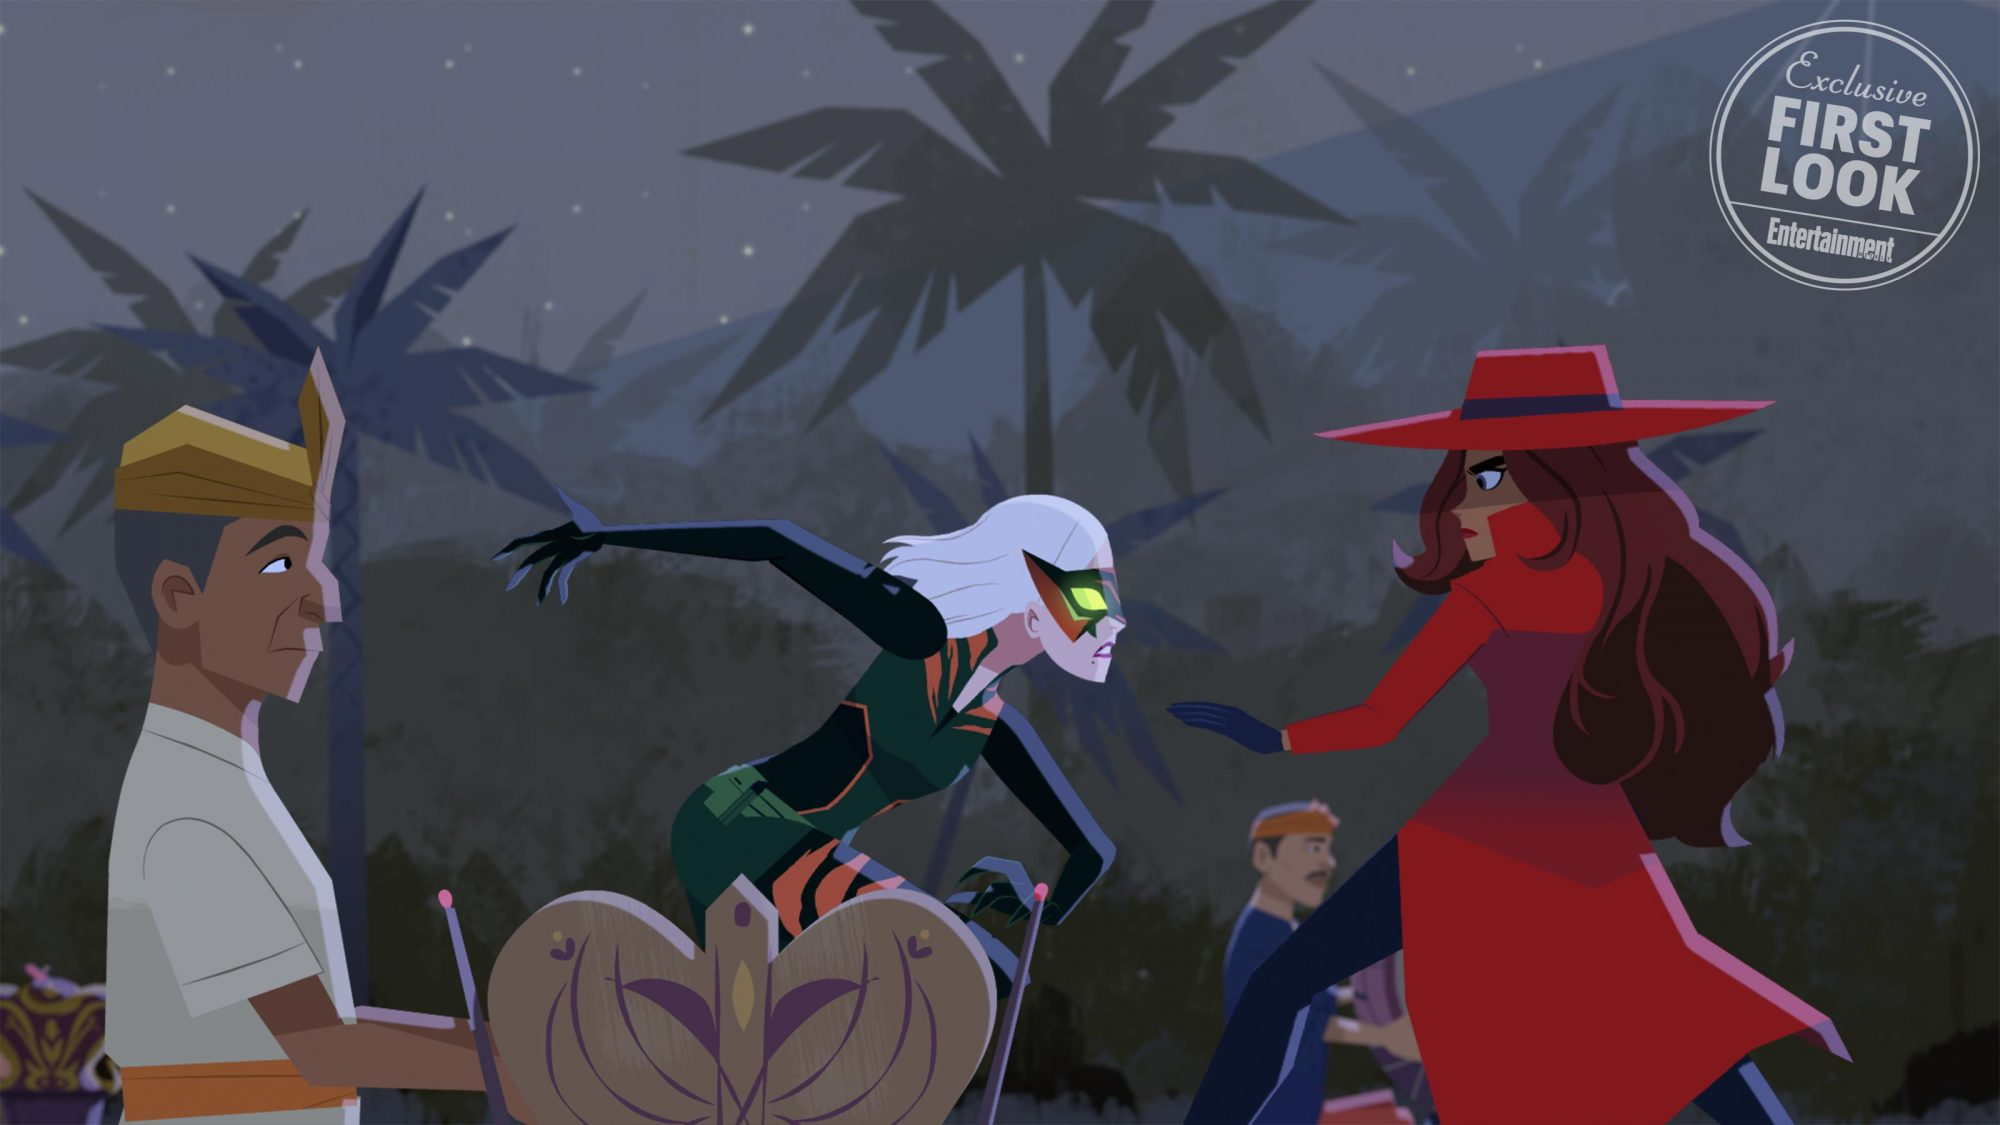 Carmen Sandiego first look